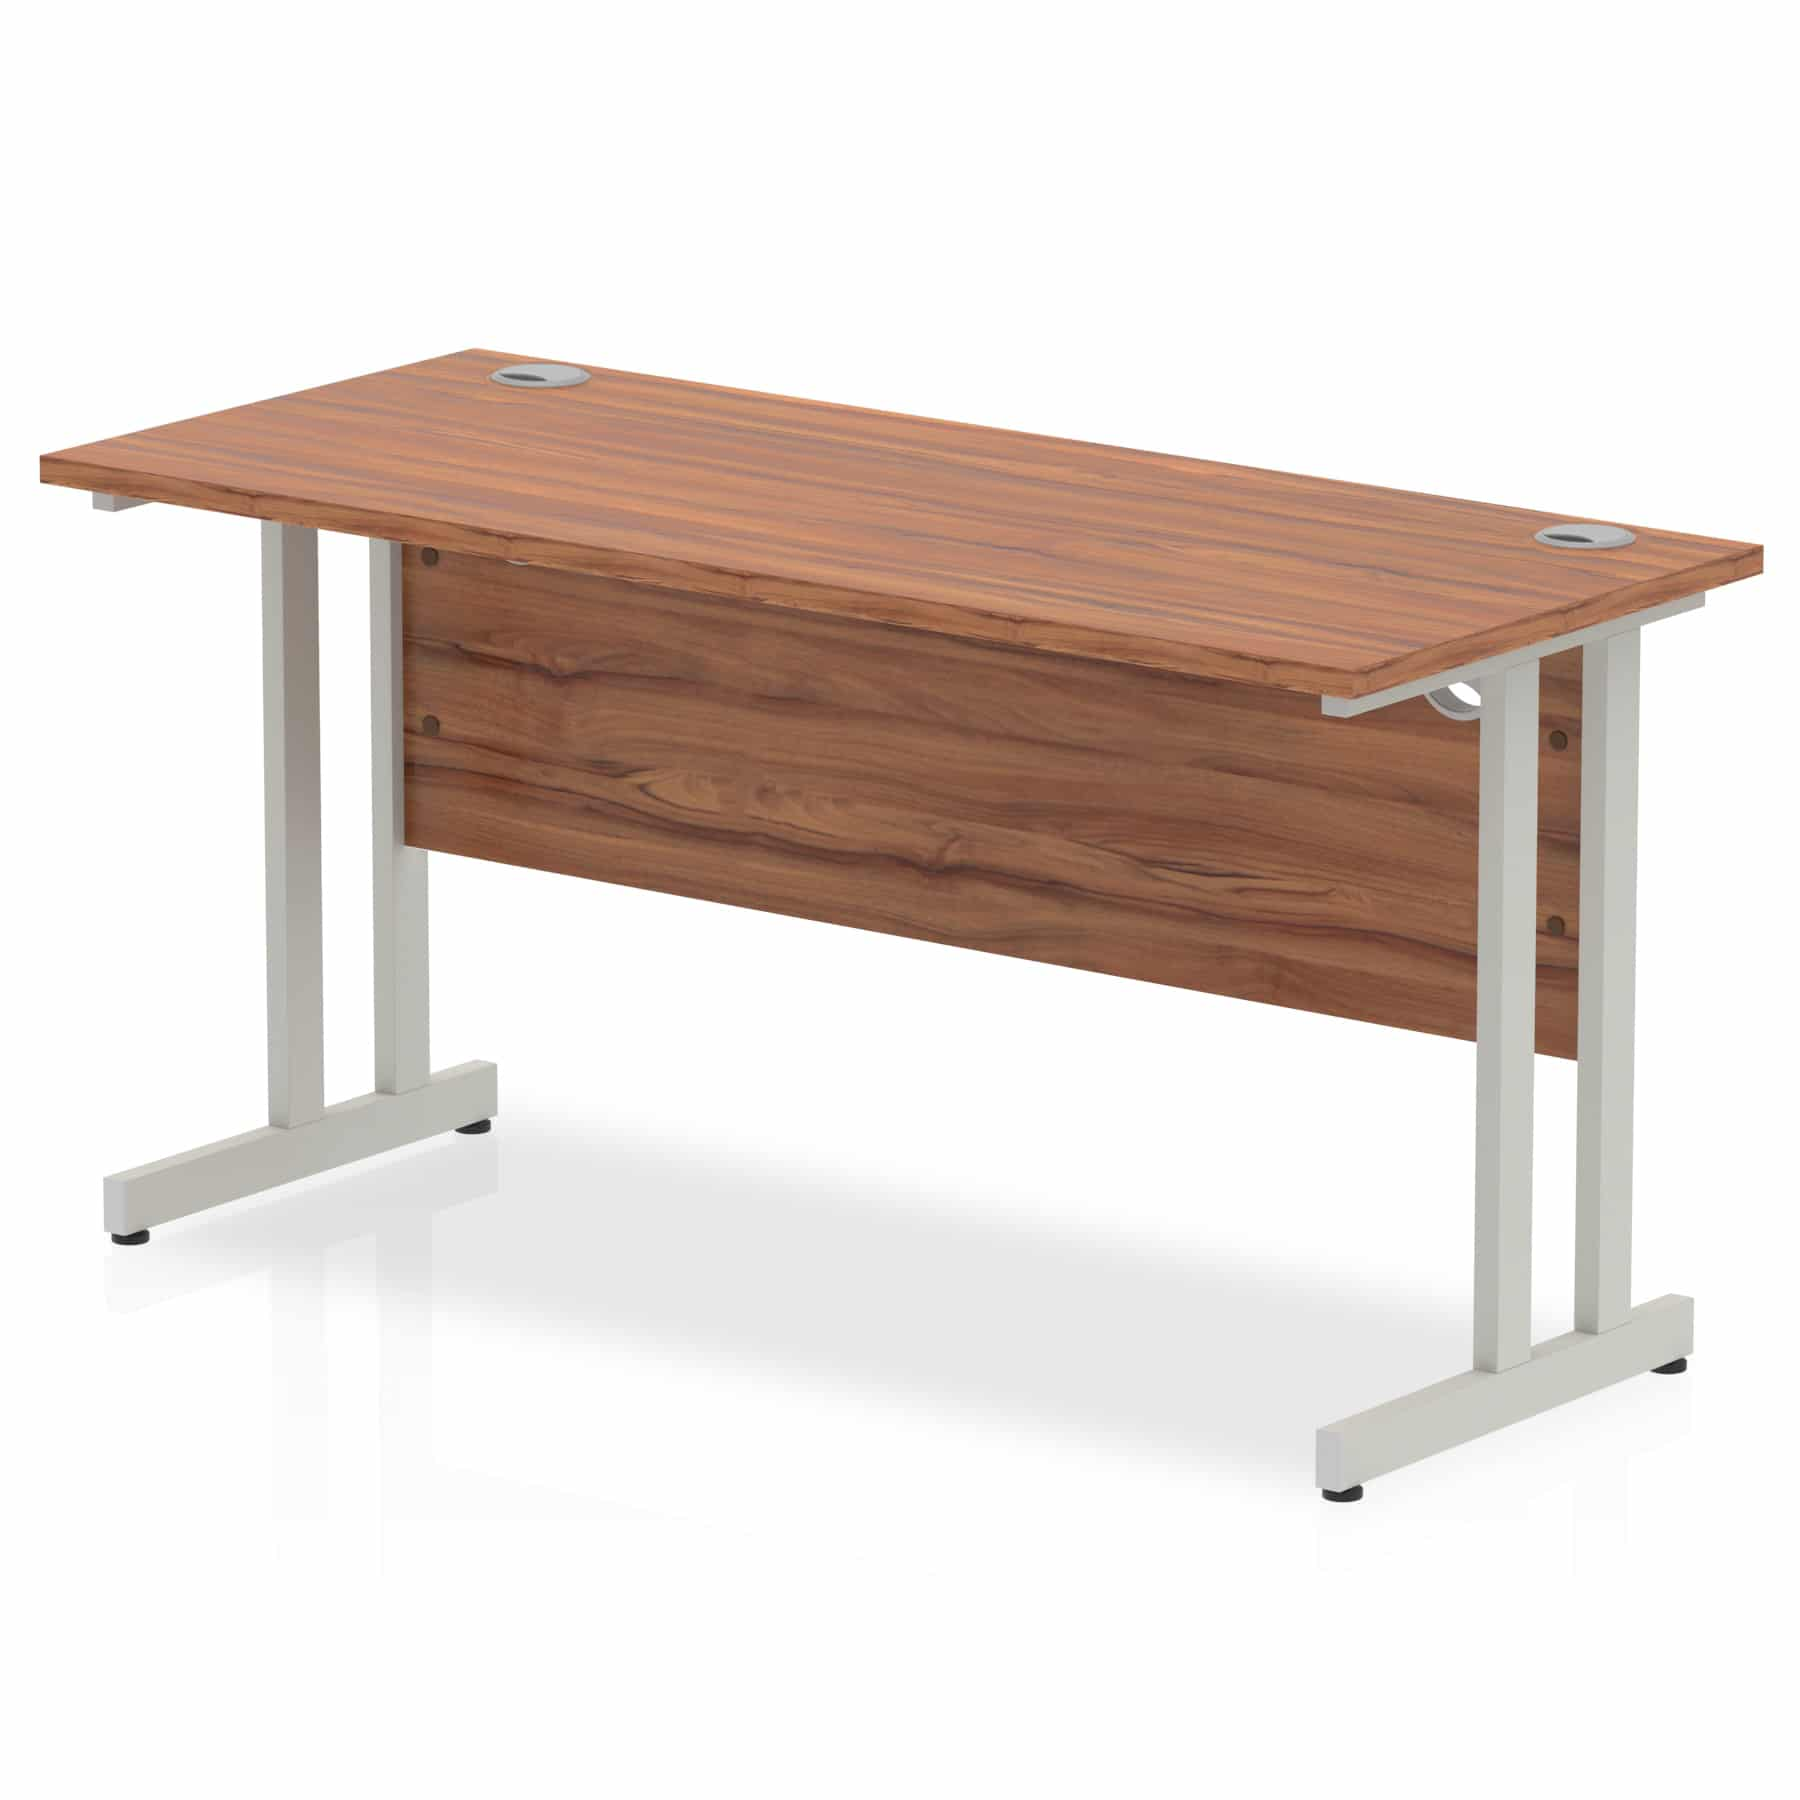 Slimline 1400mm x 600mm Rectangular Straight Desk in Walnut